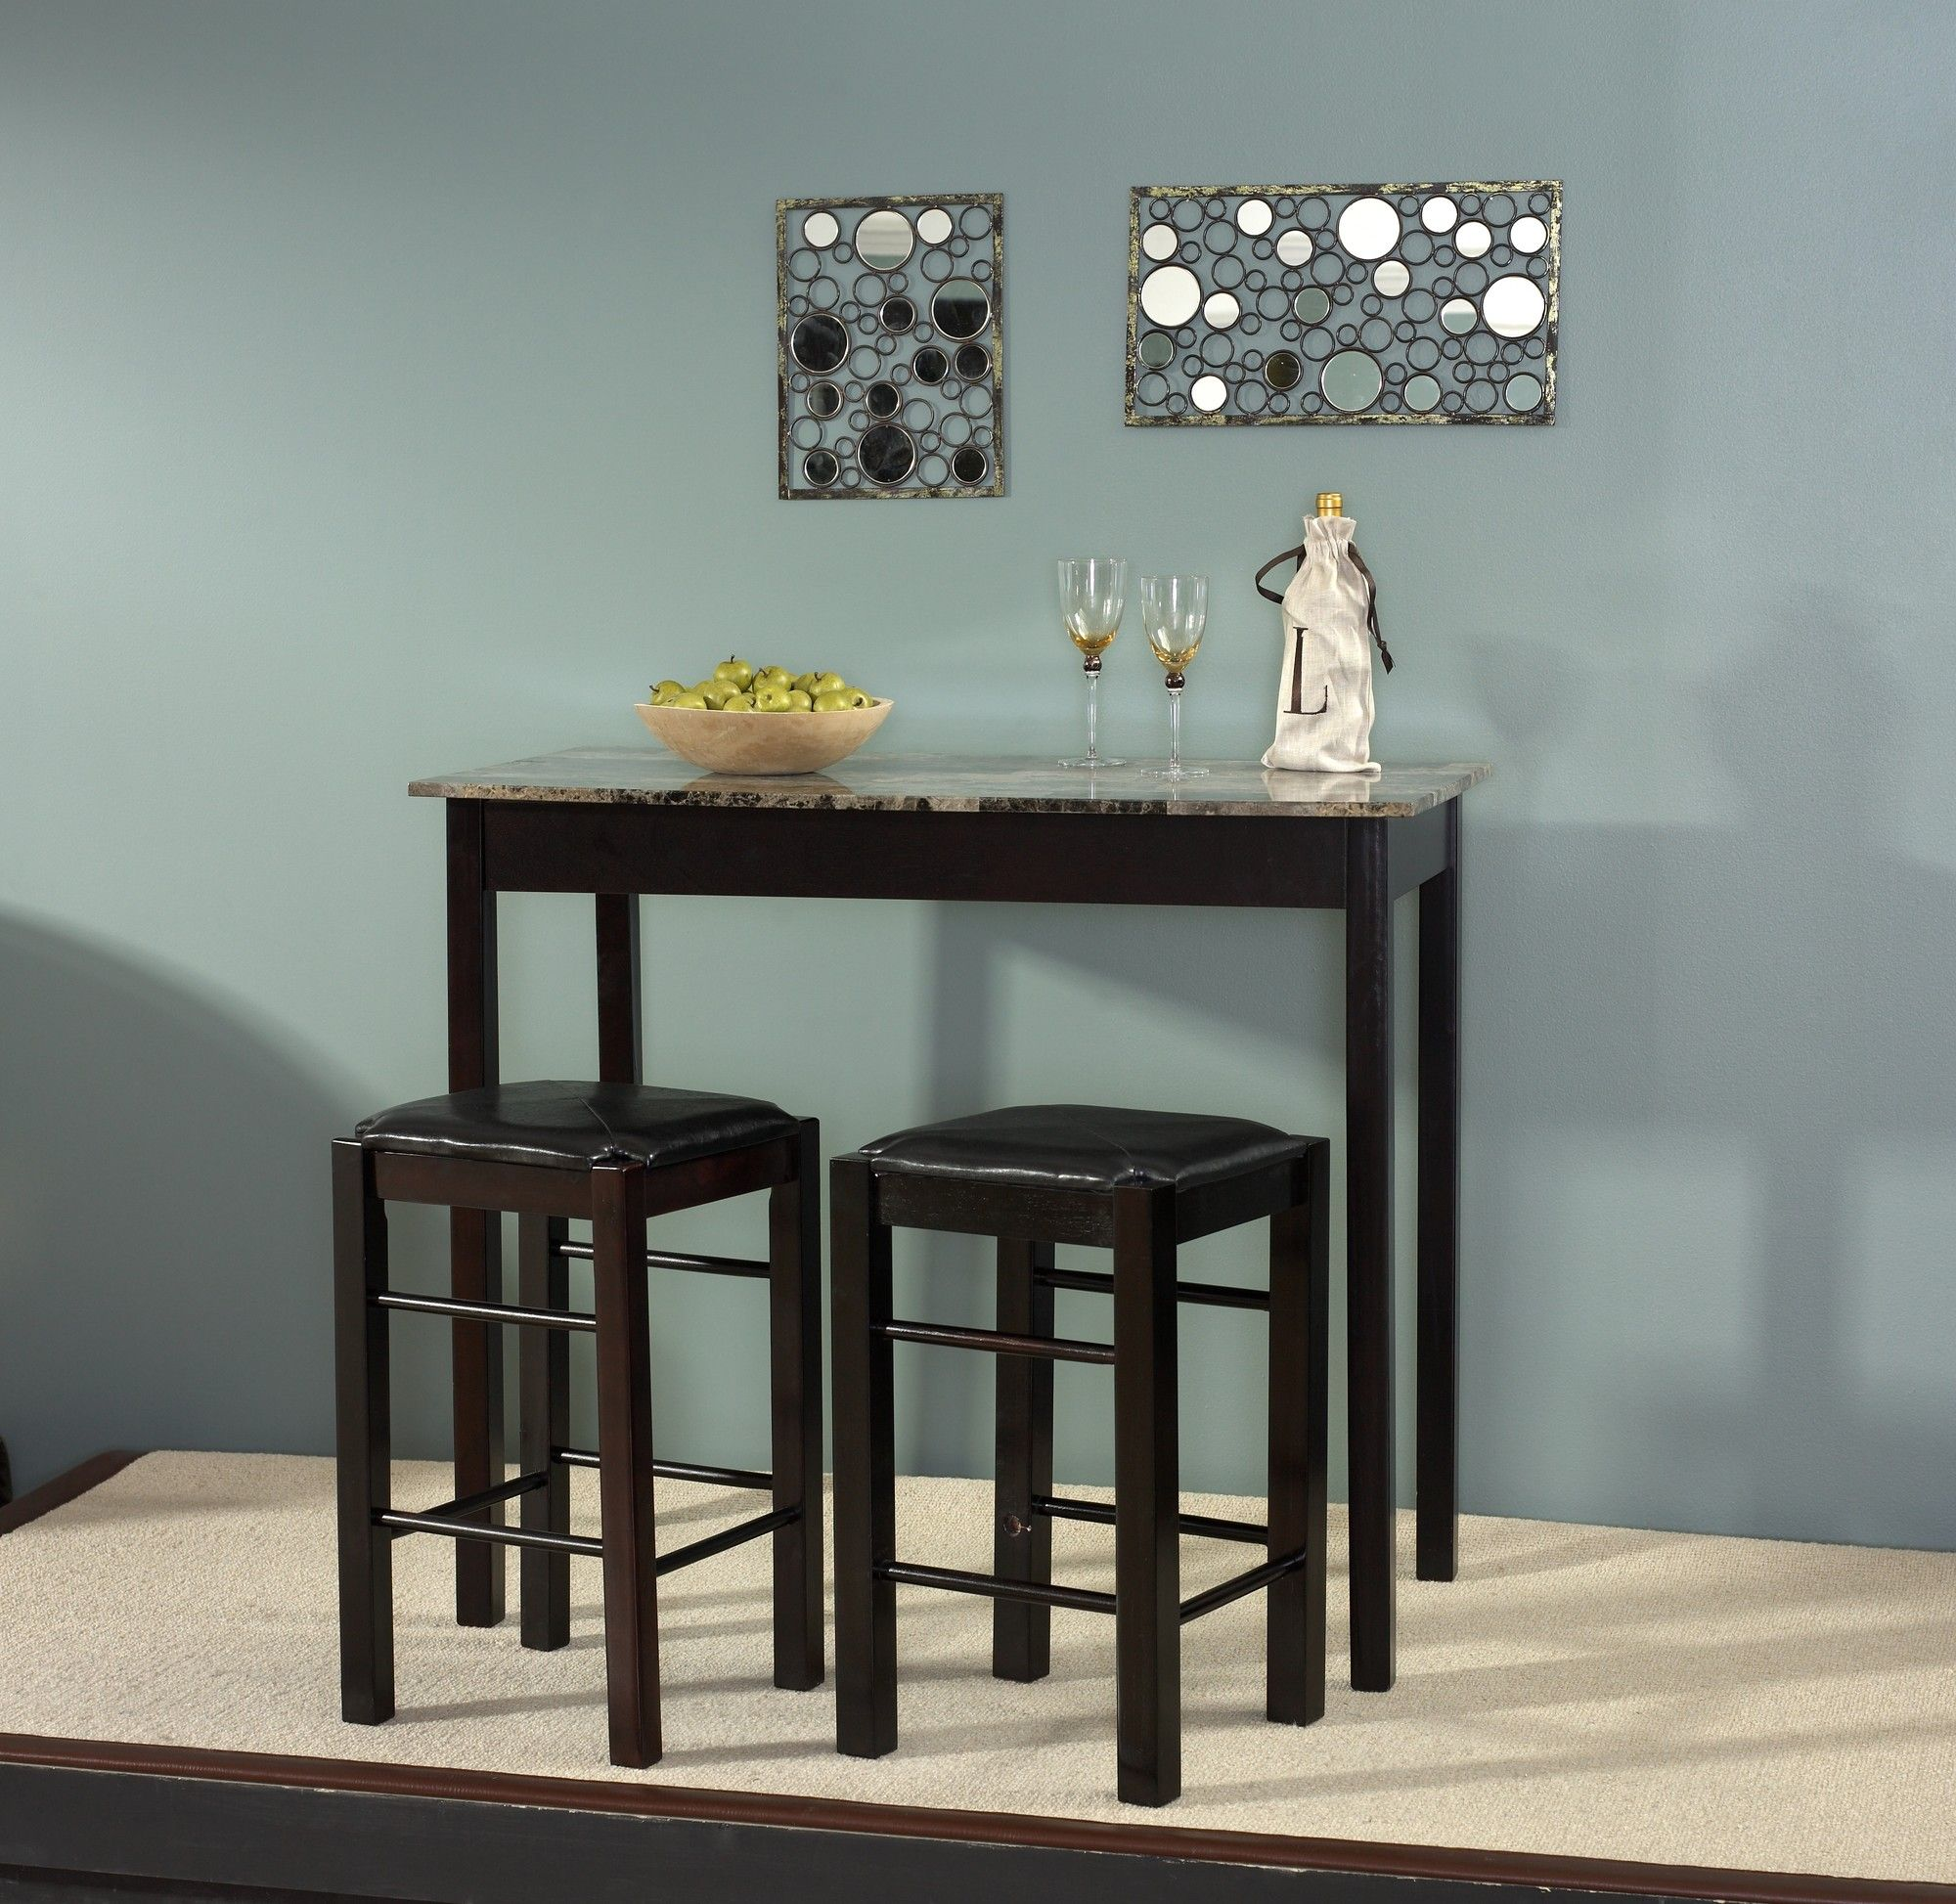 Prosser 3 Piece Counter Height Dining Set | Counter height dining ...